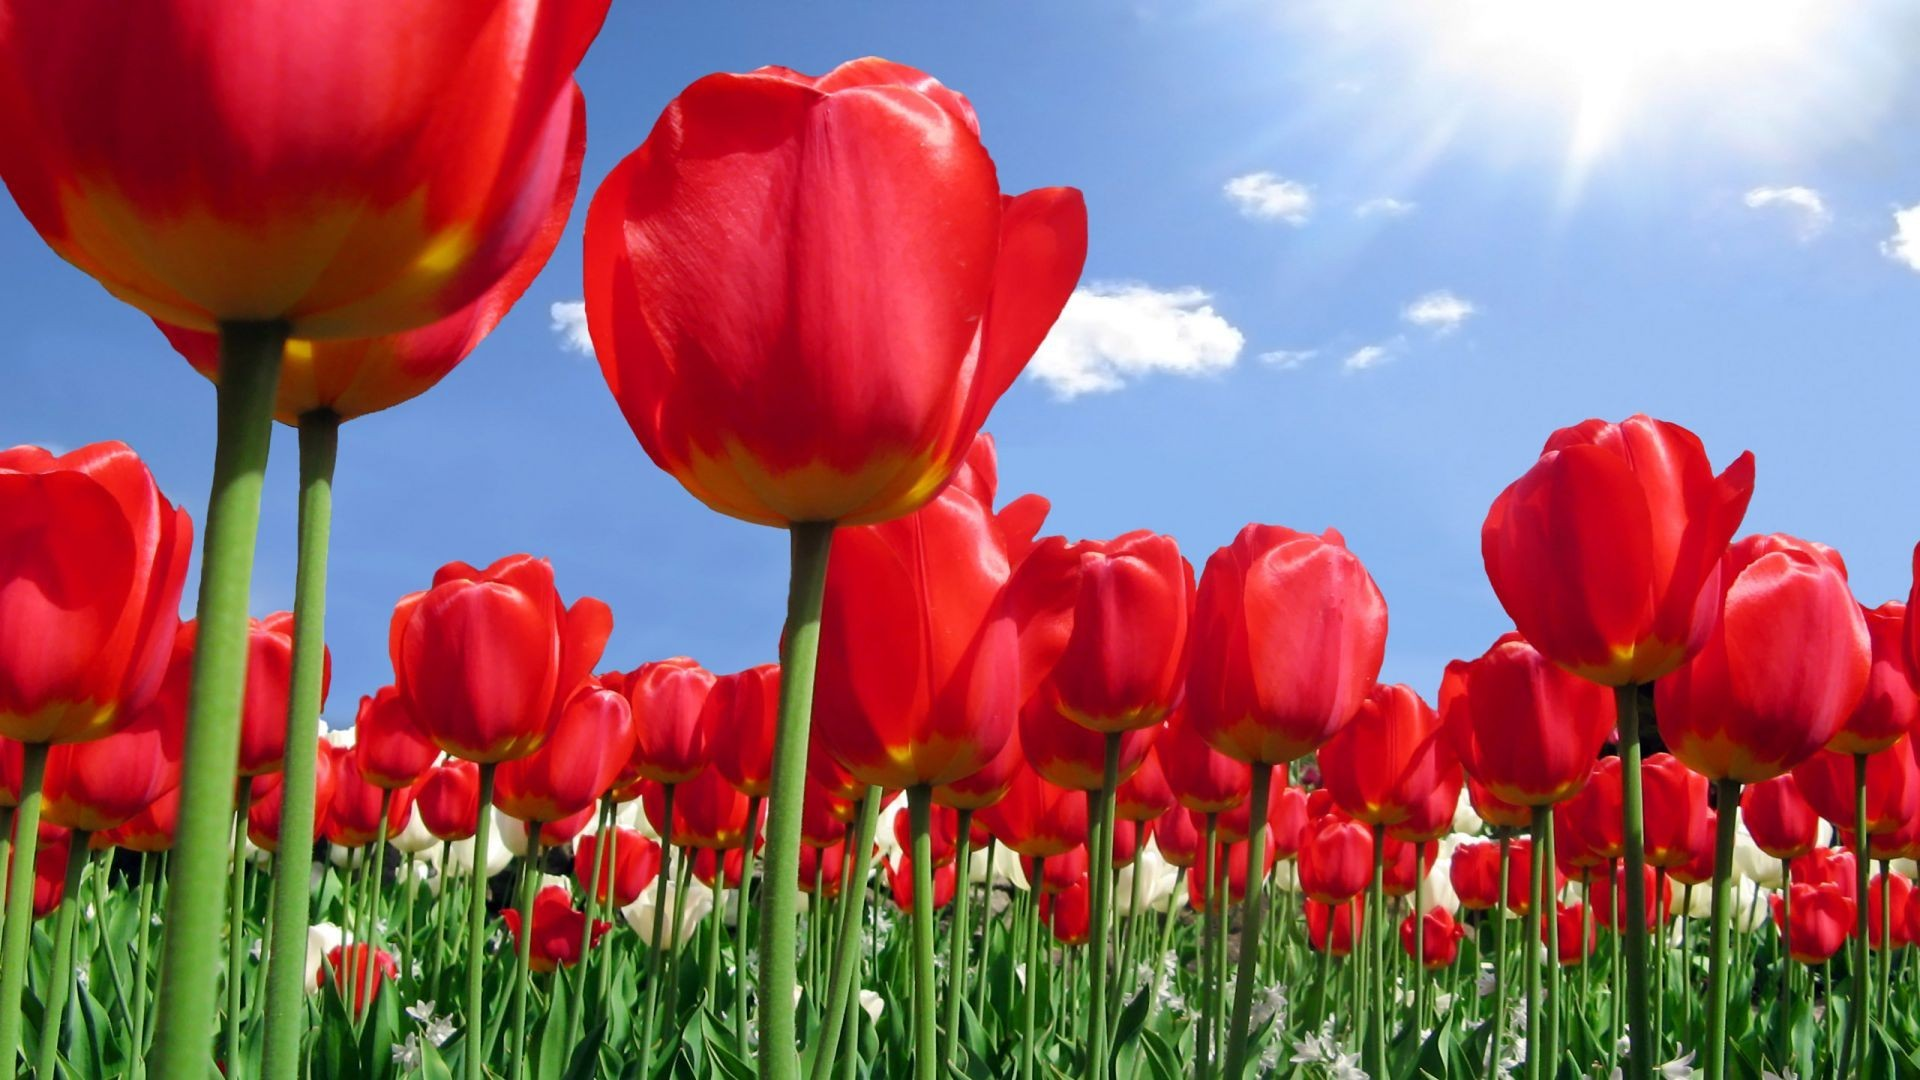 Tulips Tag – Tulip Sky Red Flowers Tulips Cloud Flower Images Hd Desktop  for HD 16